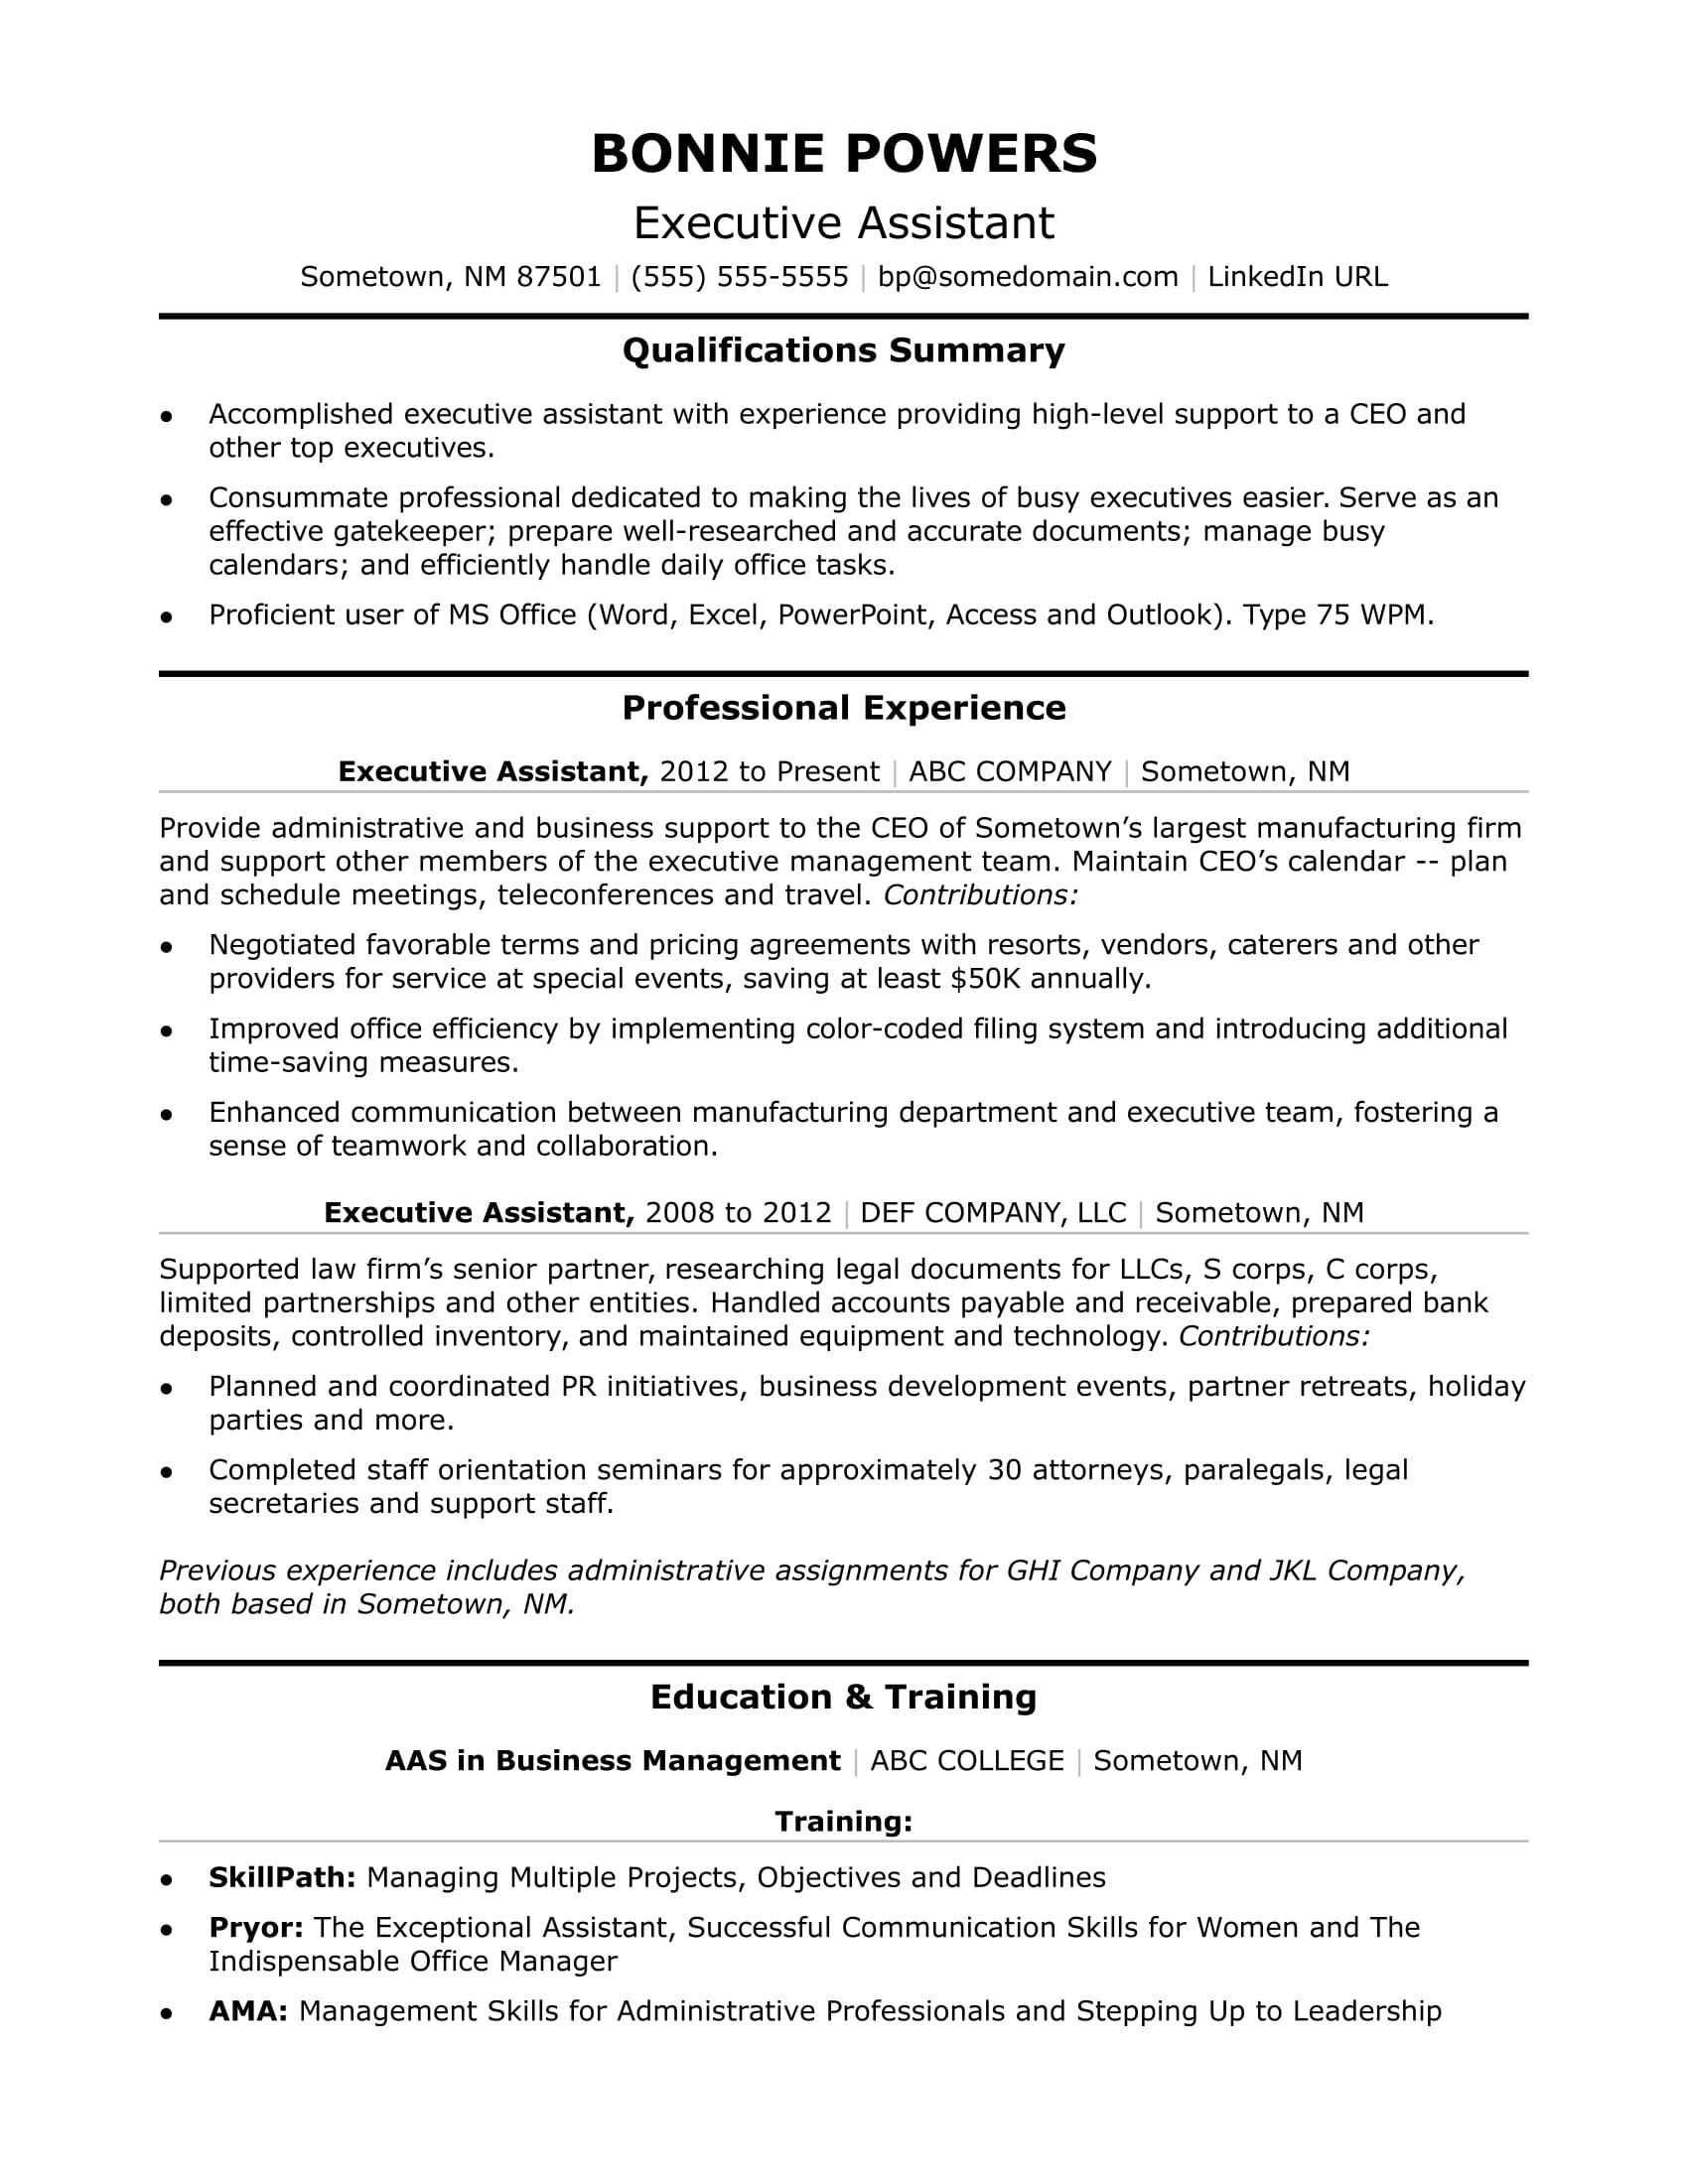 executive administrative assistant resume executive administrative assistant resume sample 21640 | executive assistant